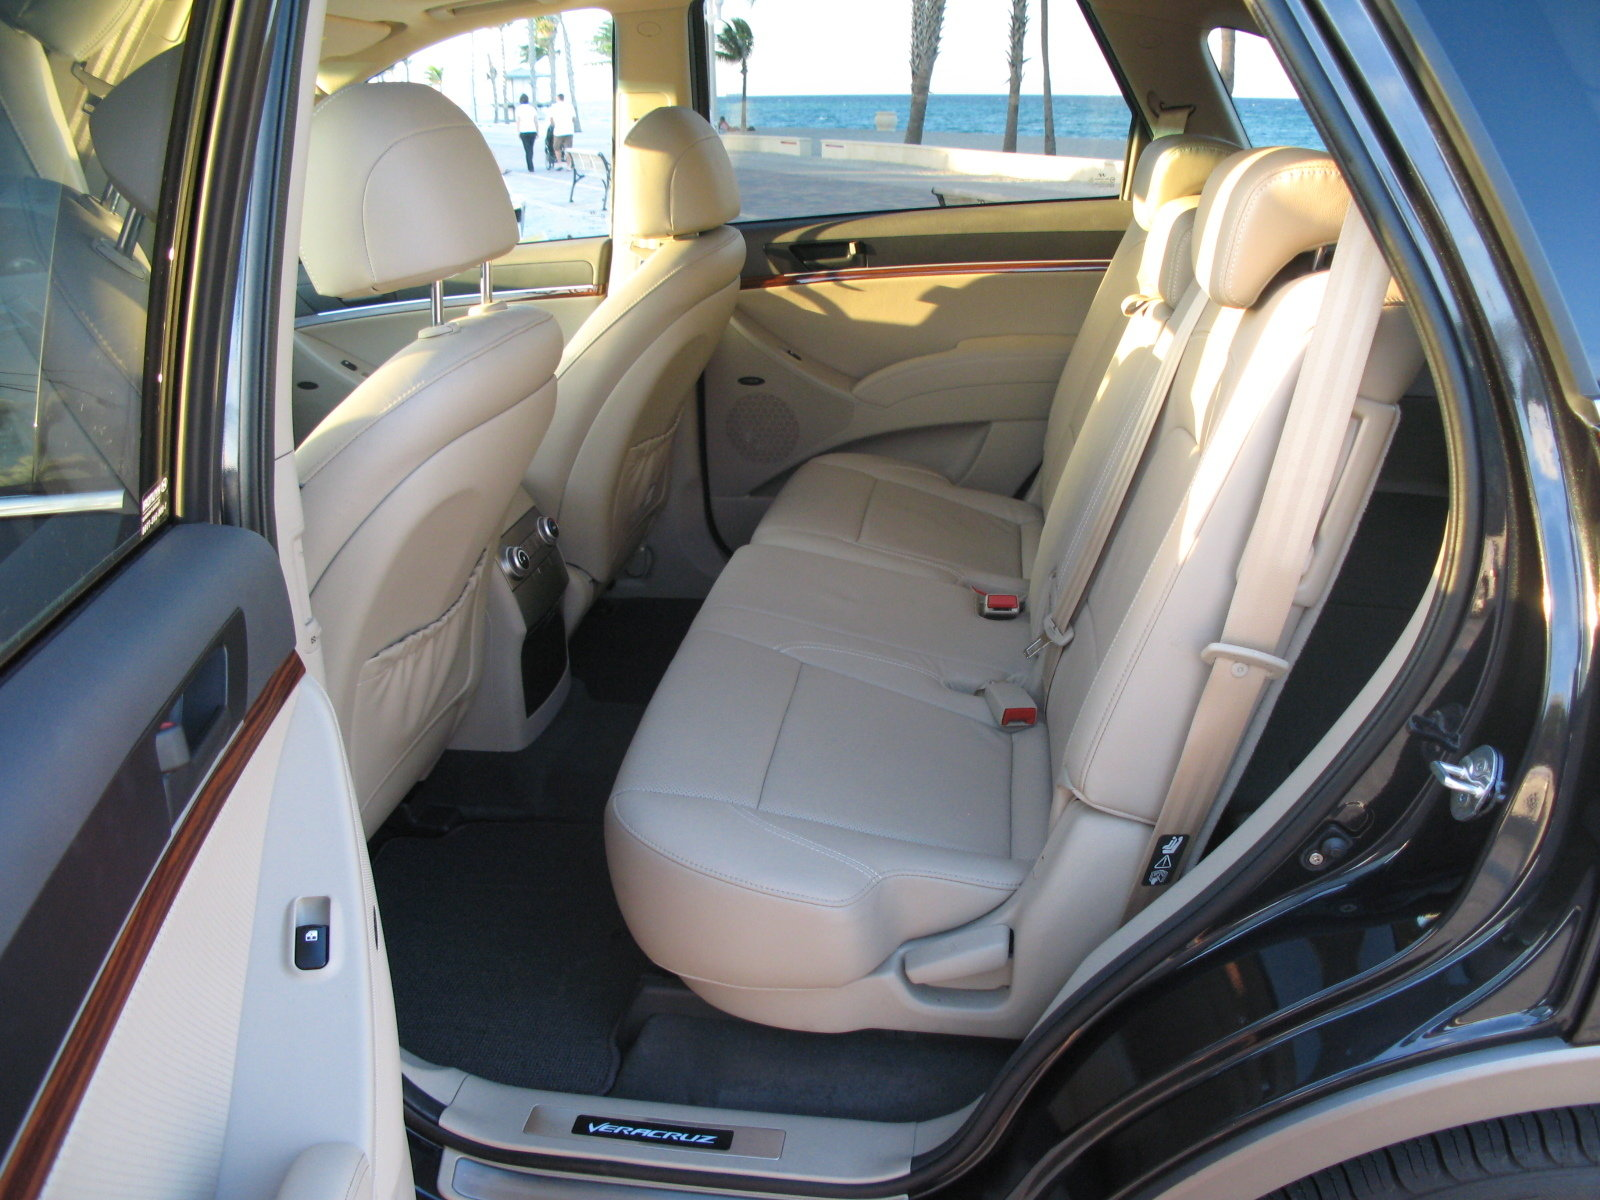 2008 hyundai veracruz picture 252171 car review top. Black Bedroom Furniture Sets. Home Design Ideas